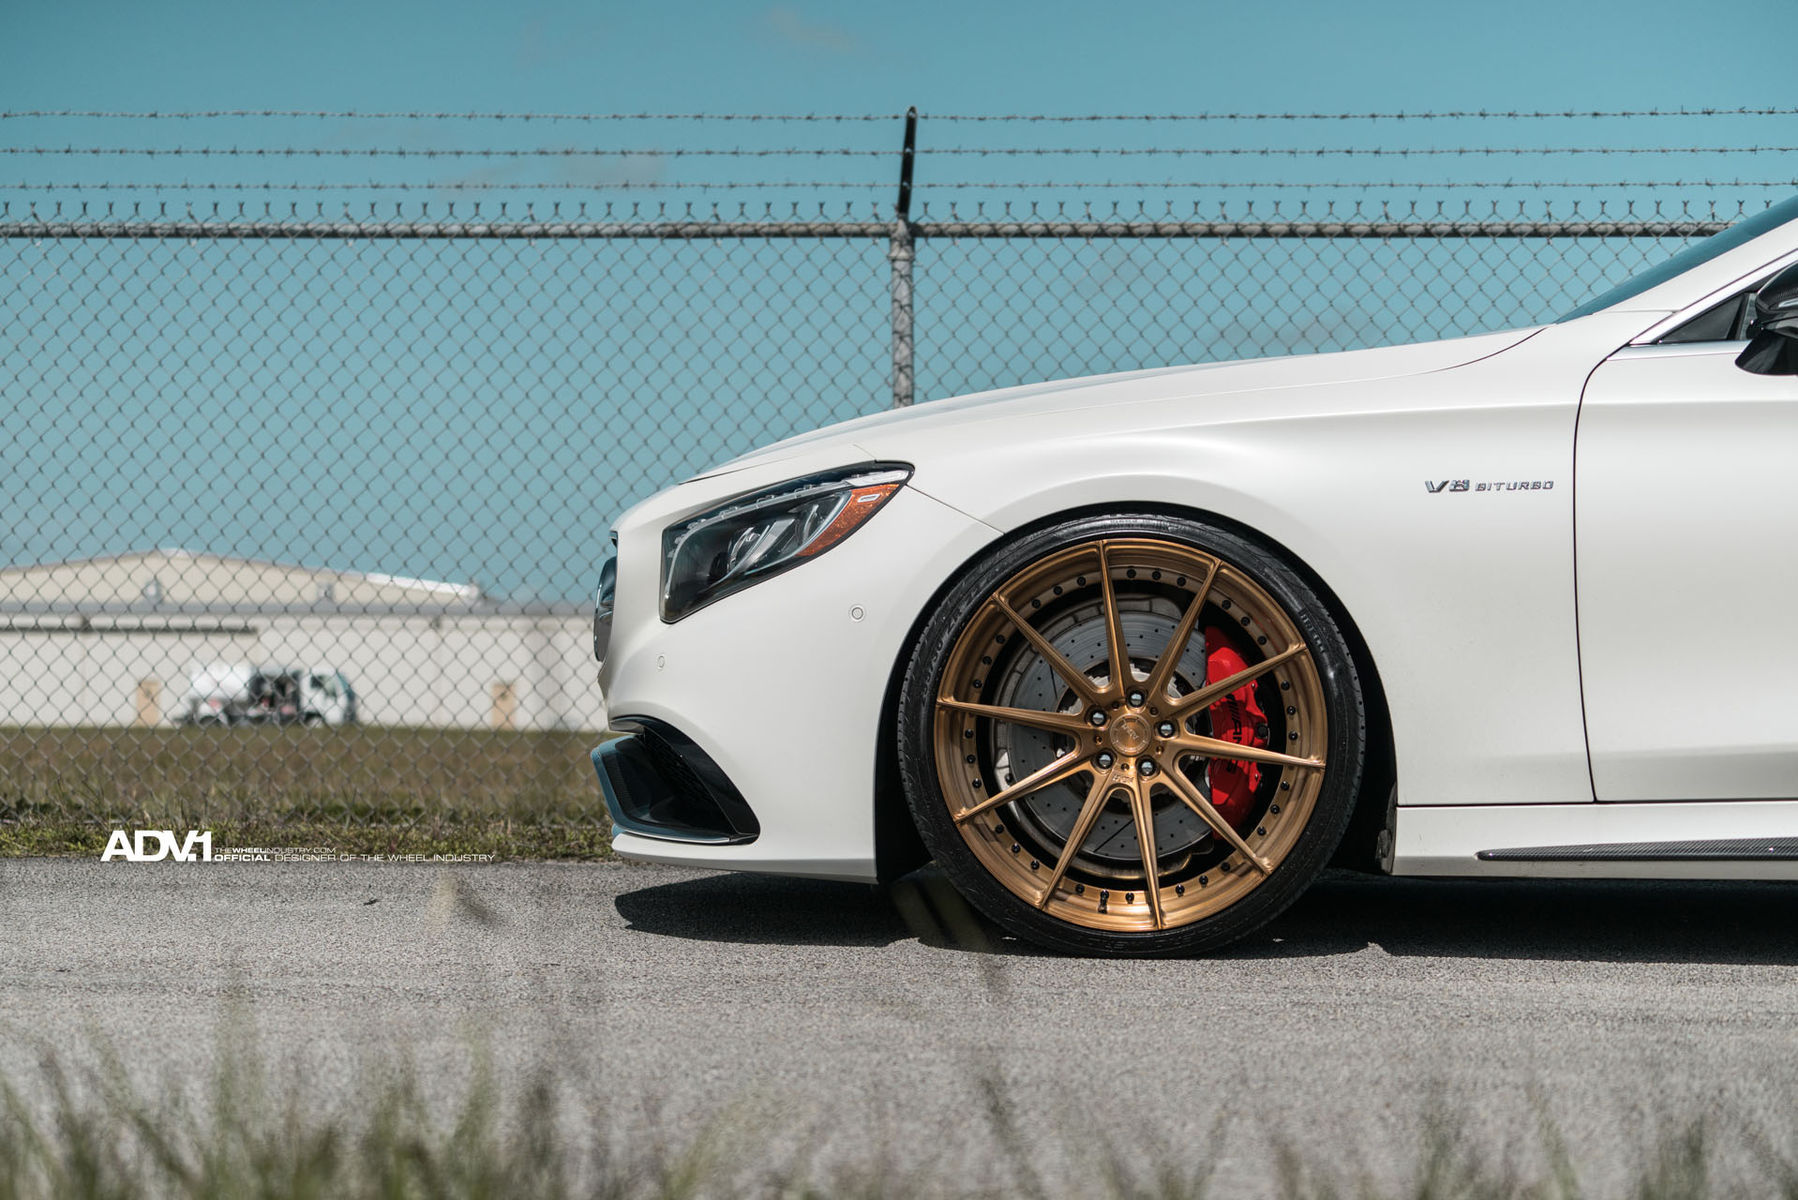 2015 Mercedes-Benz S-Class | ADV.1 Wheels Mercedes Benz S63 AMG Coupe